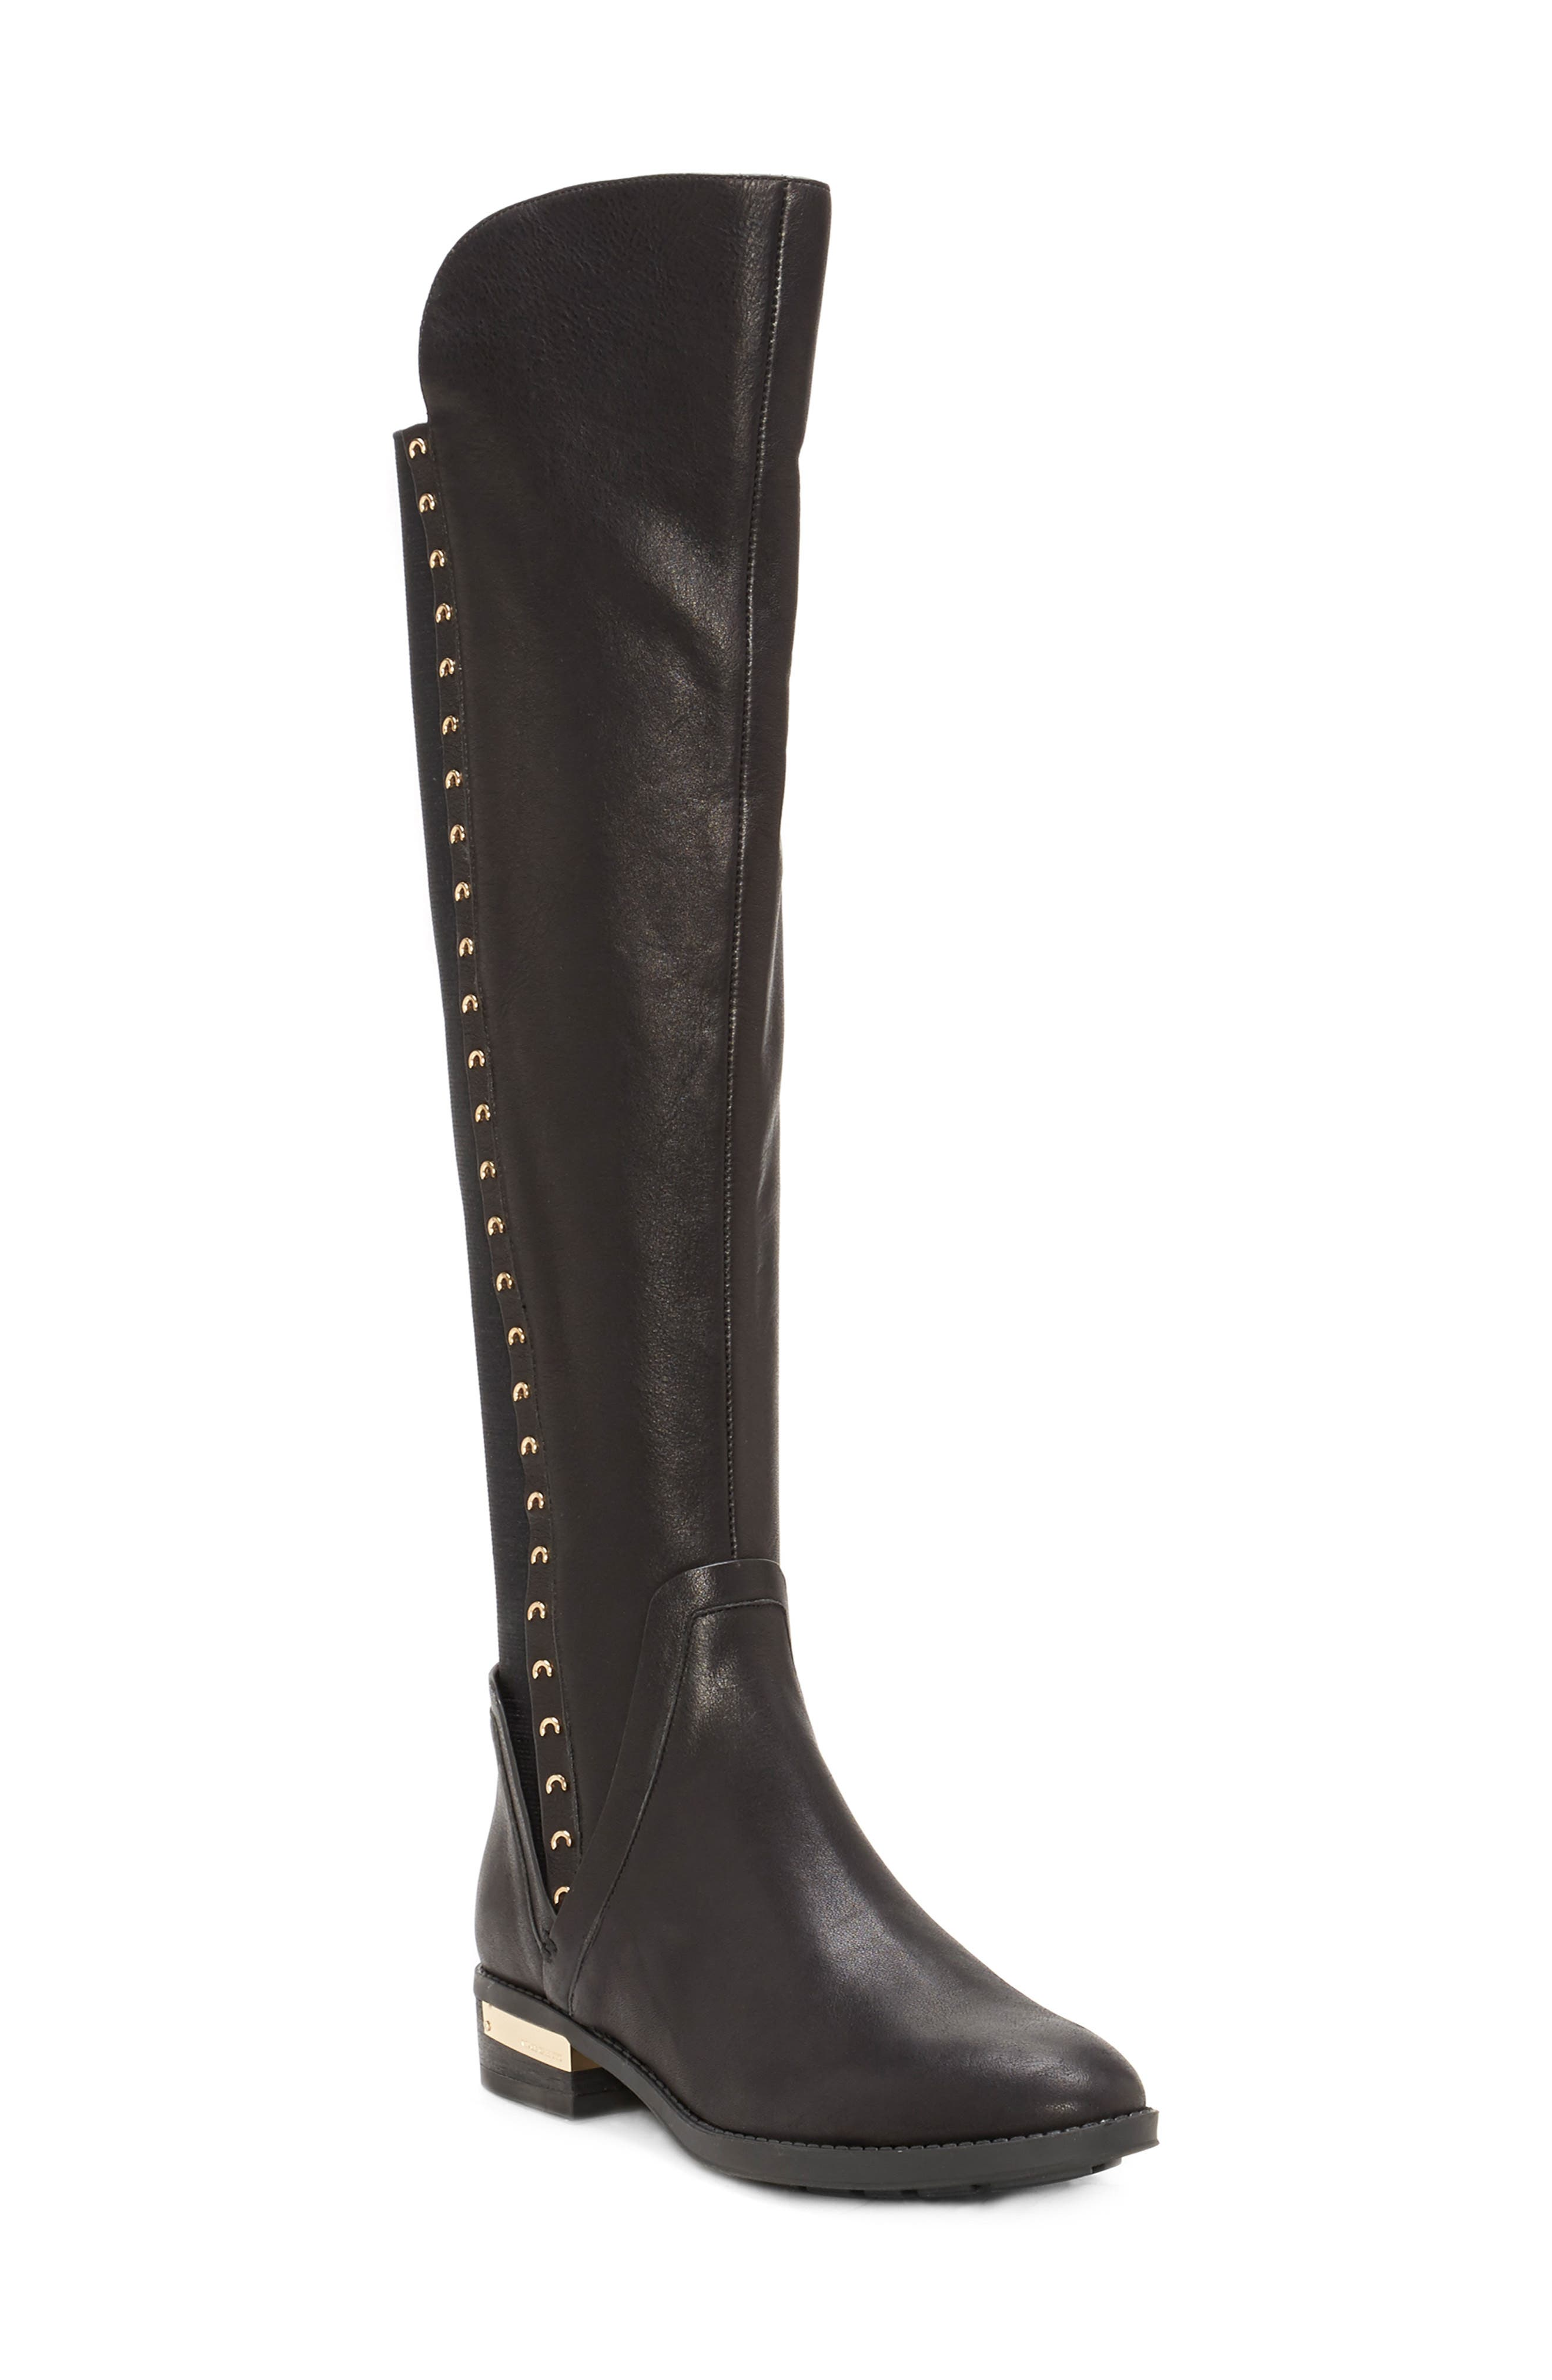 Vince Camuto Pardonal Over-The-Knee Boot, Black